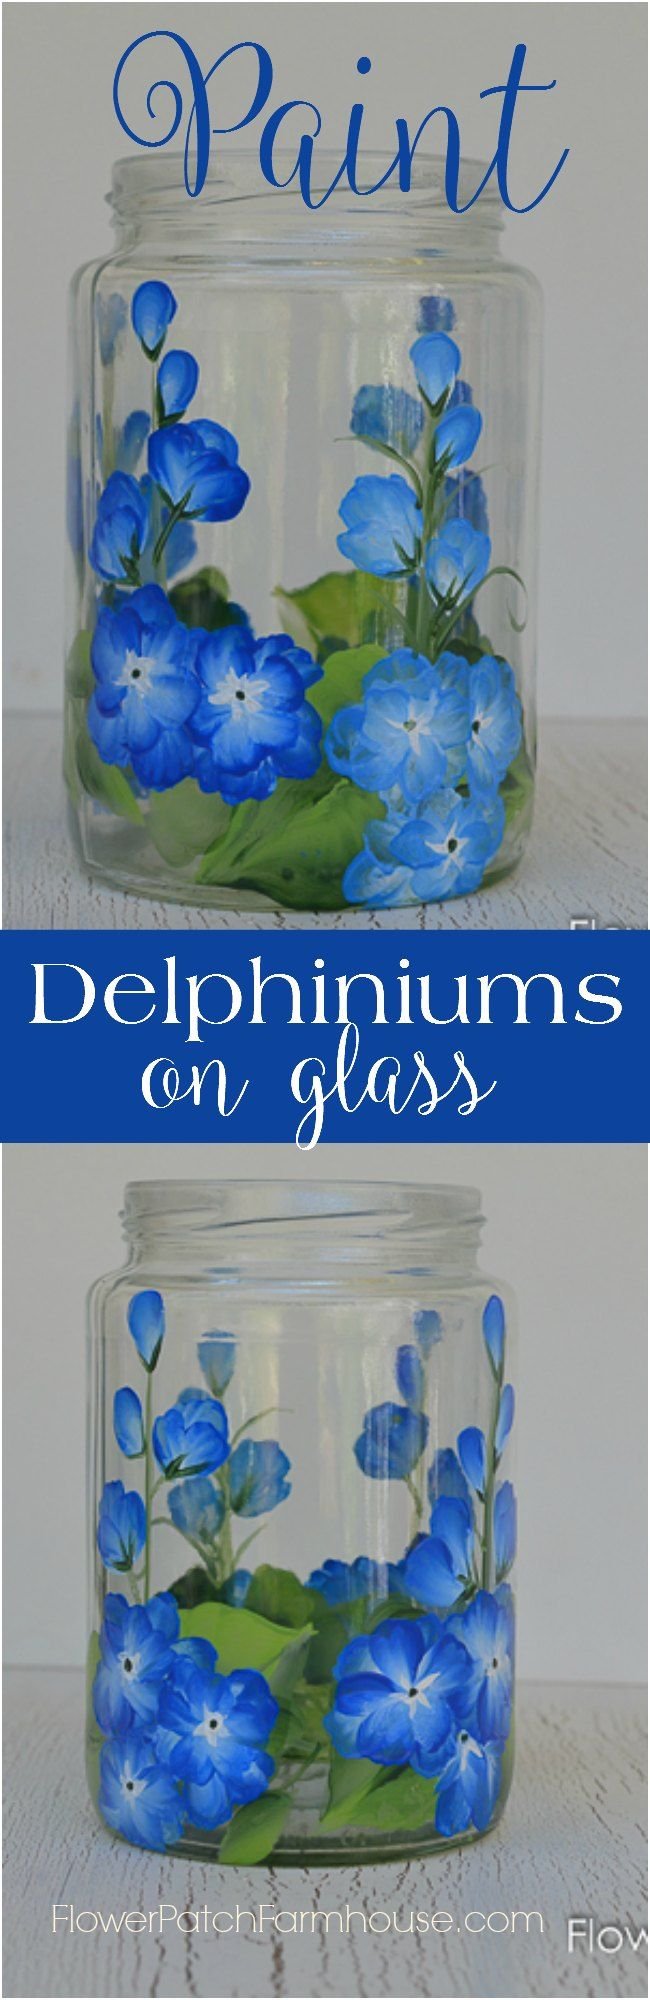 Paint Delphiniums on Glass - Beautiful blue flowers hand painted on glass one easy stroke at a time.  Easy enough for the beginner and so much fun.  Decorate mason jars into fun summer luminaries, make them into candles, DIY tiki torches or even use for storage.